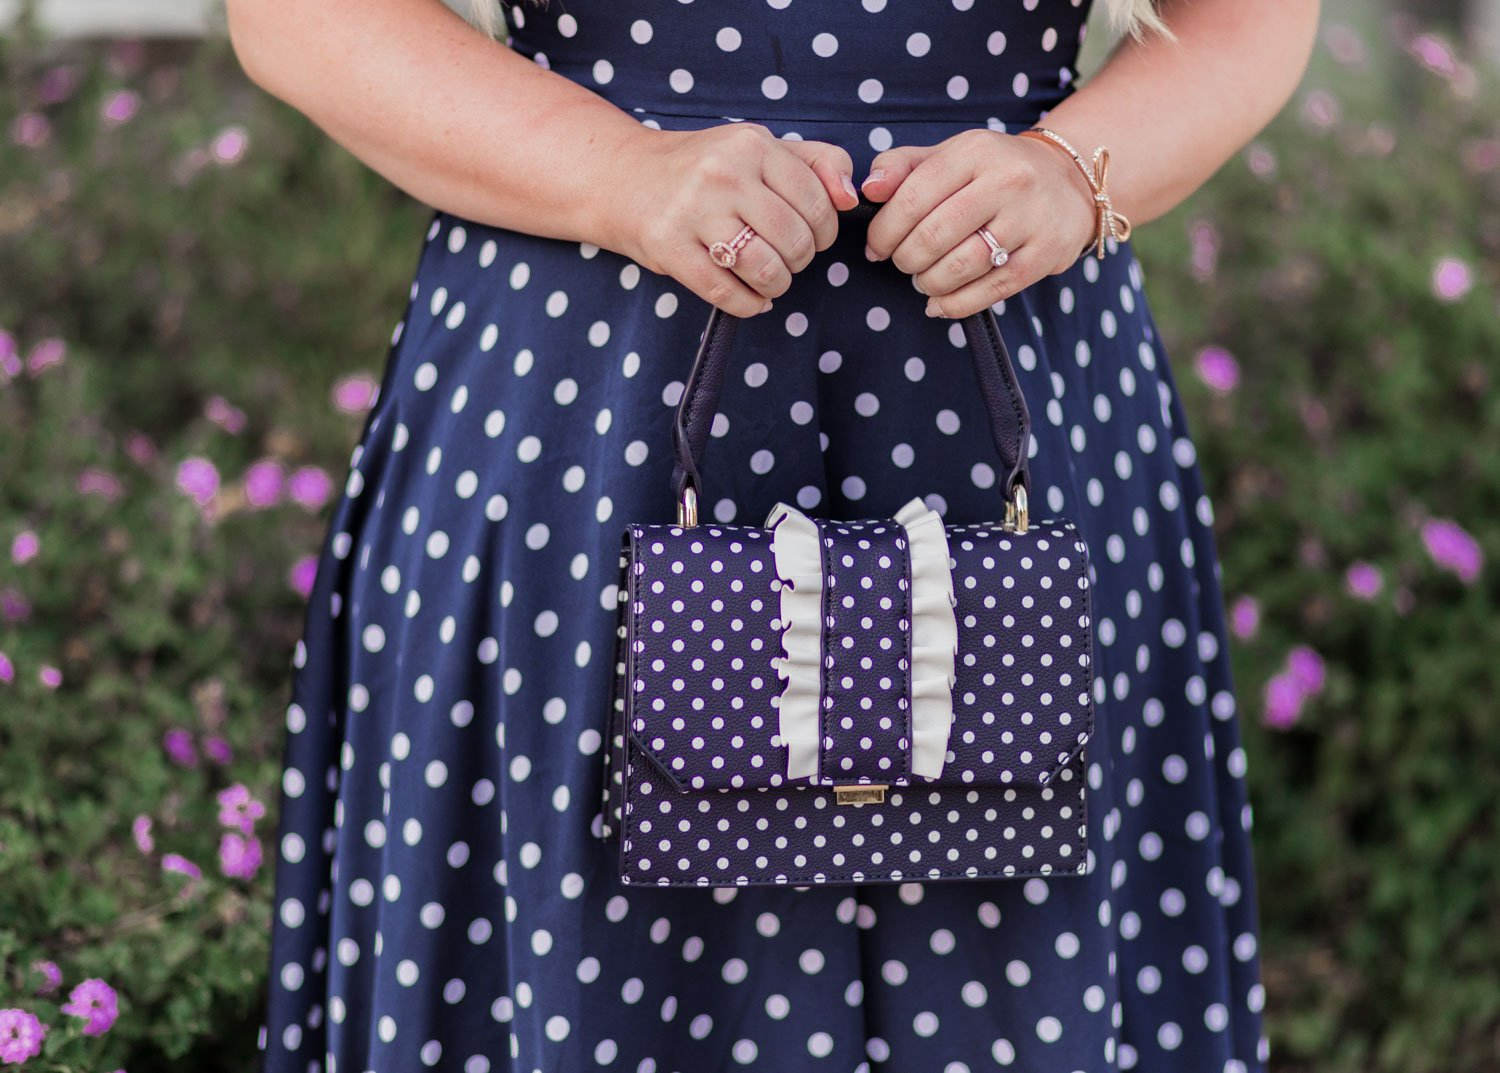 Fashion Blogger Elizabeth Hugen of Lizzie in Lace shares her girly handbag collection including this navy polka dot handbag